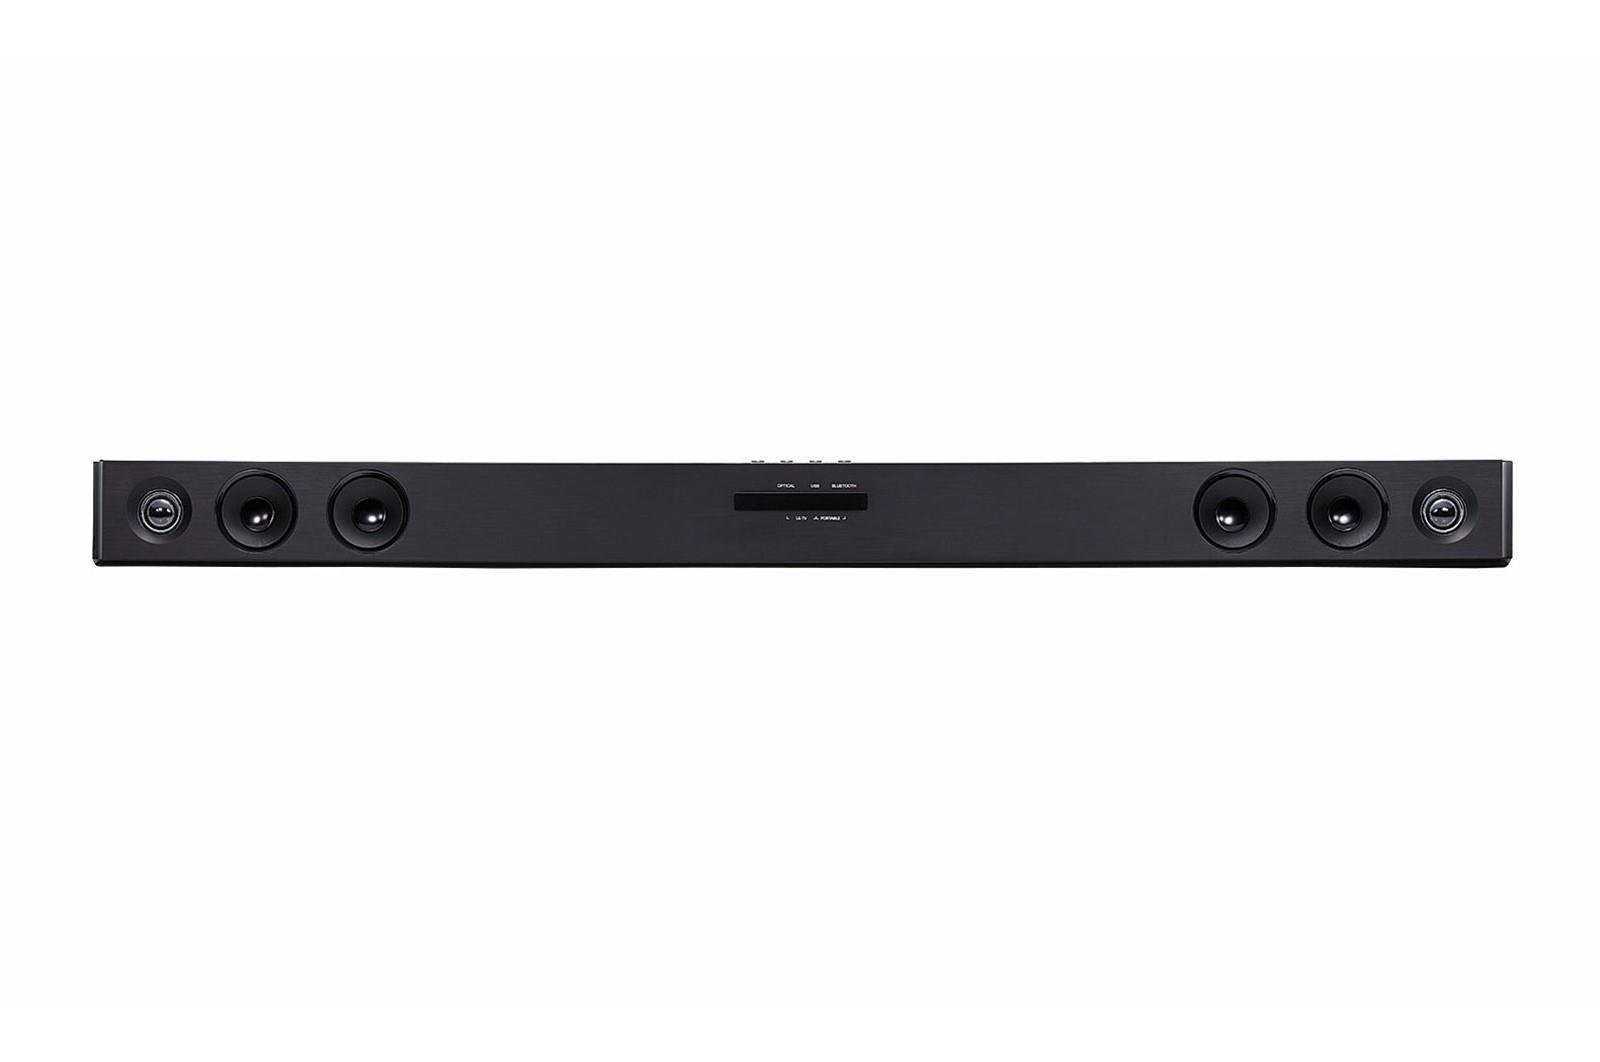 LG SK1D 2.0 ch Sound Bar with Bluetooth Connectivity